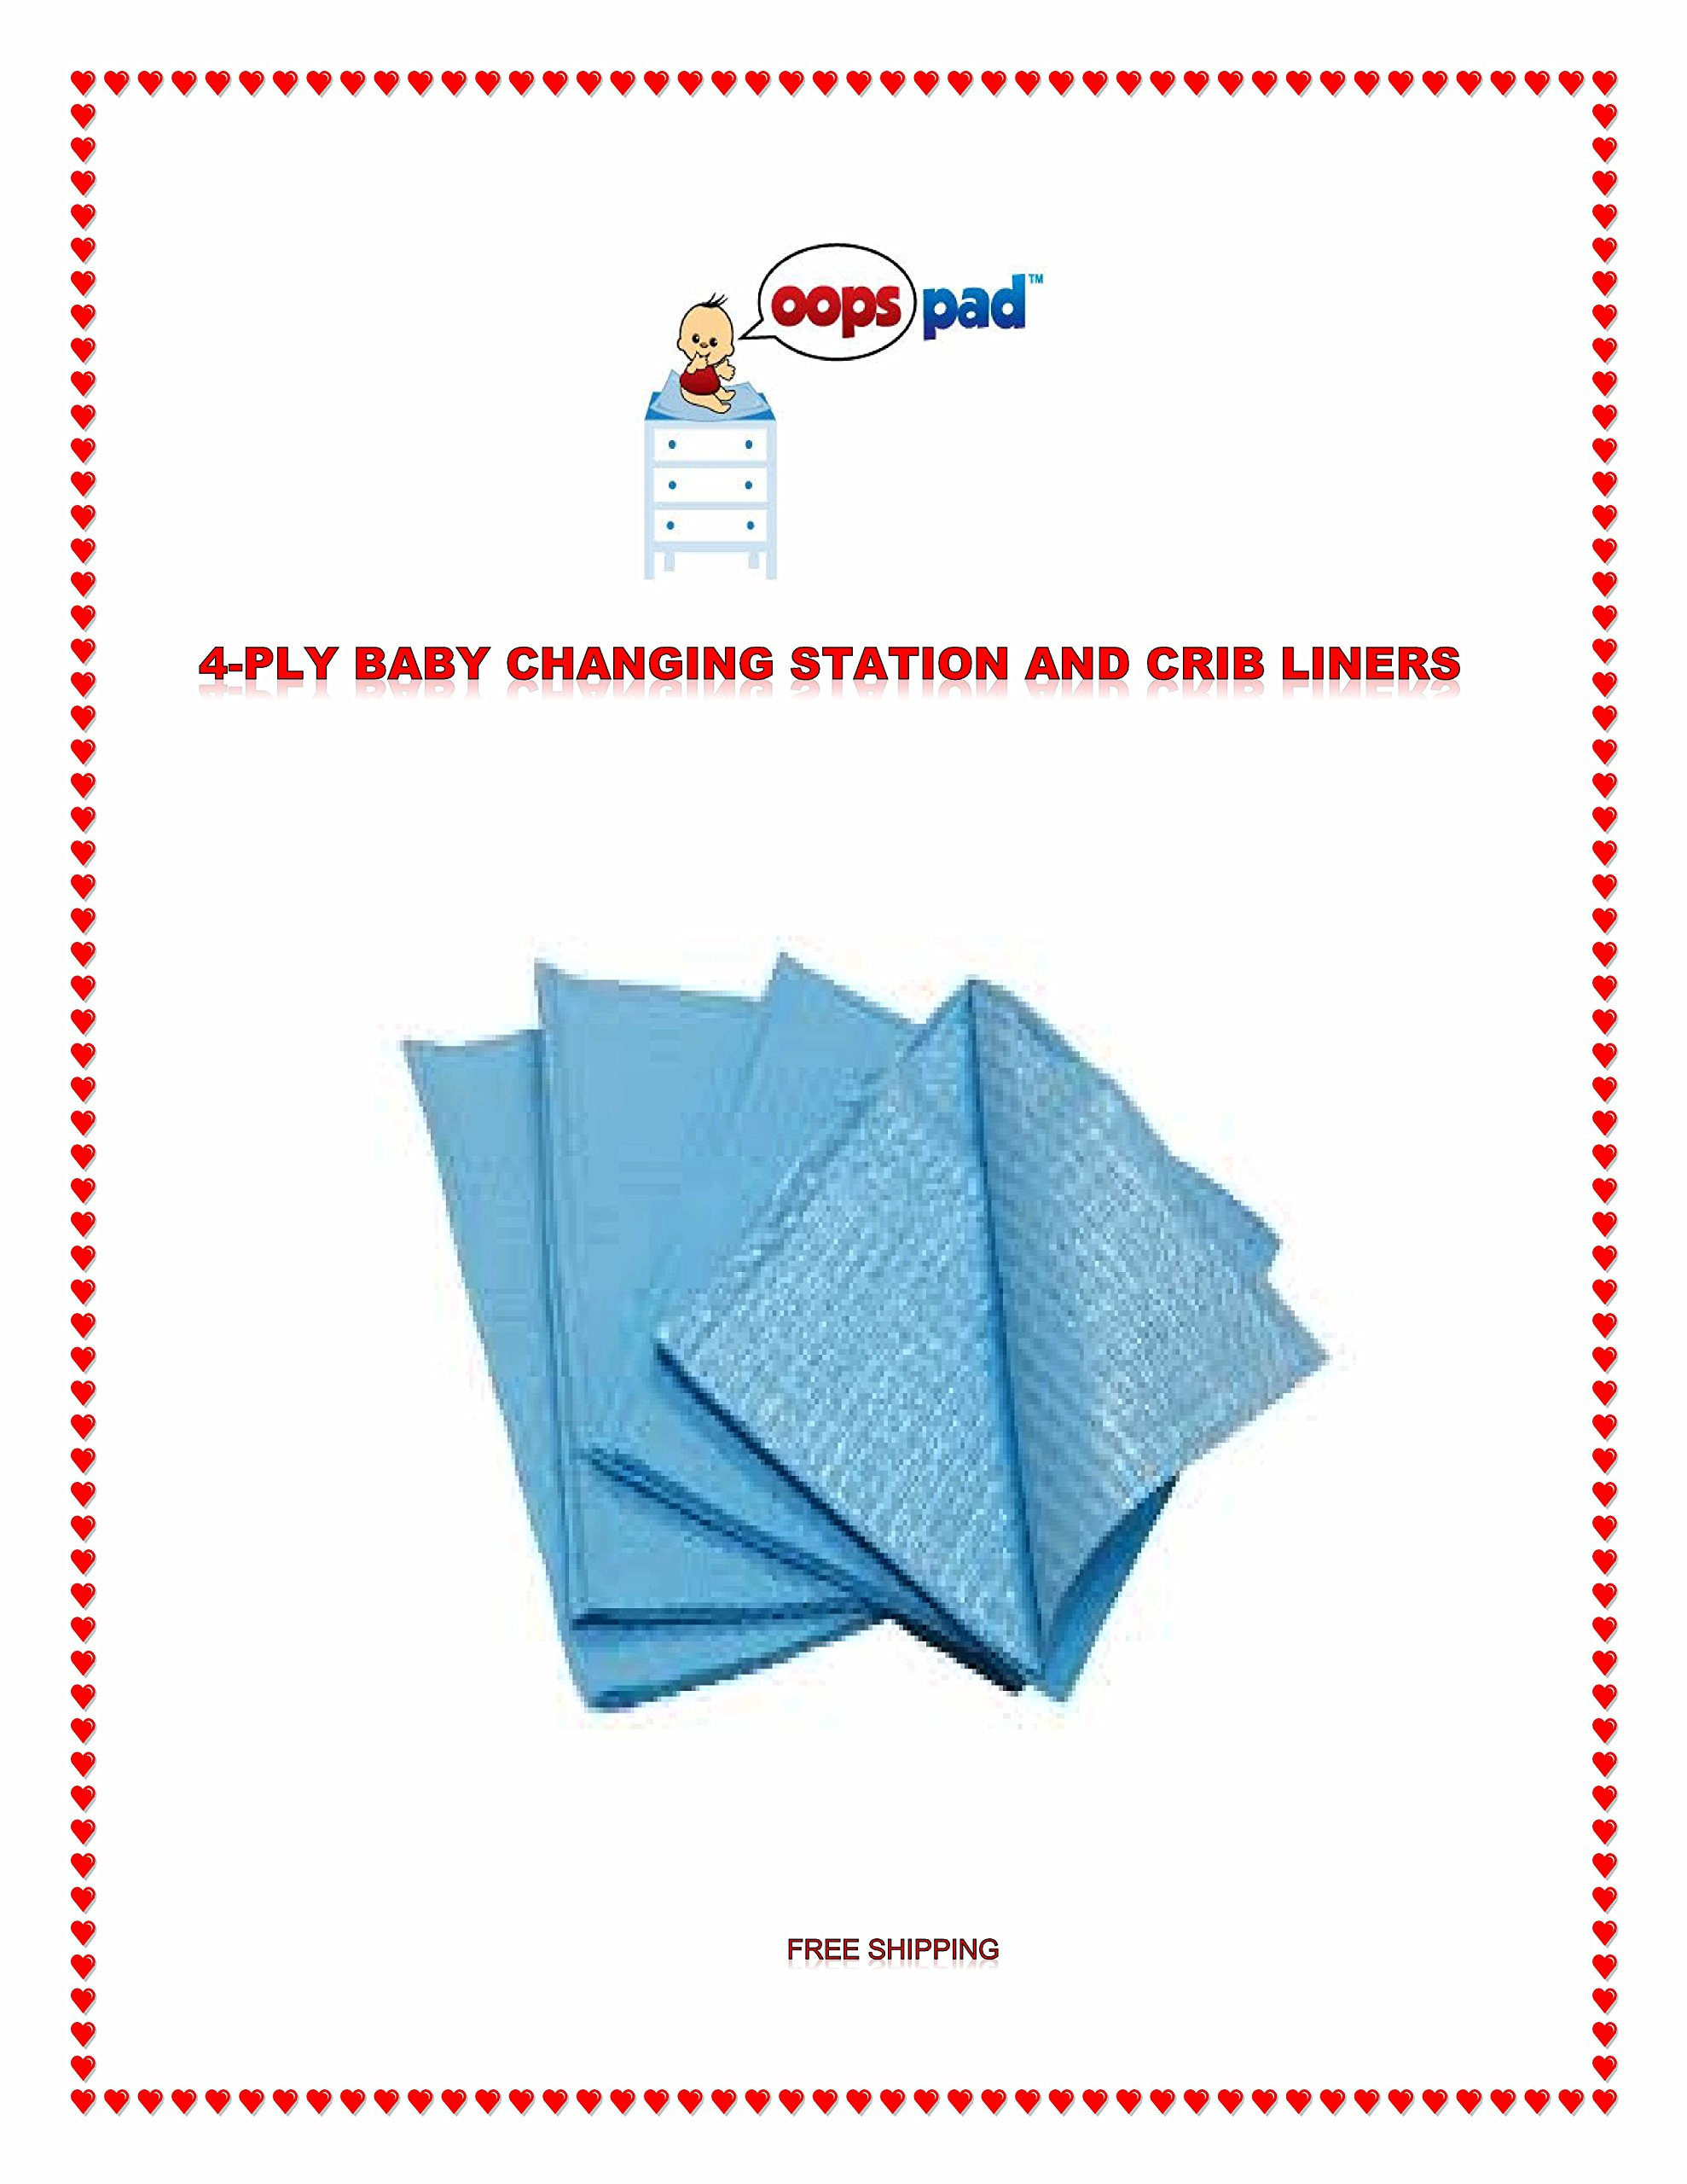 Oops Pad 4-Ply Blue Changing Station Table Liners 250ct FREE SAMPLES by Oops Pad